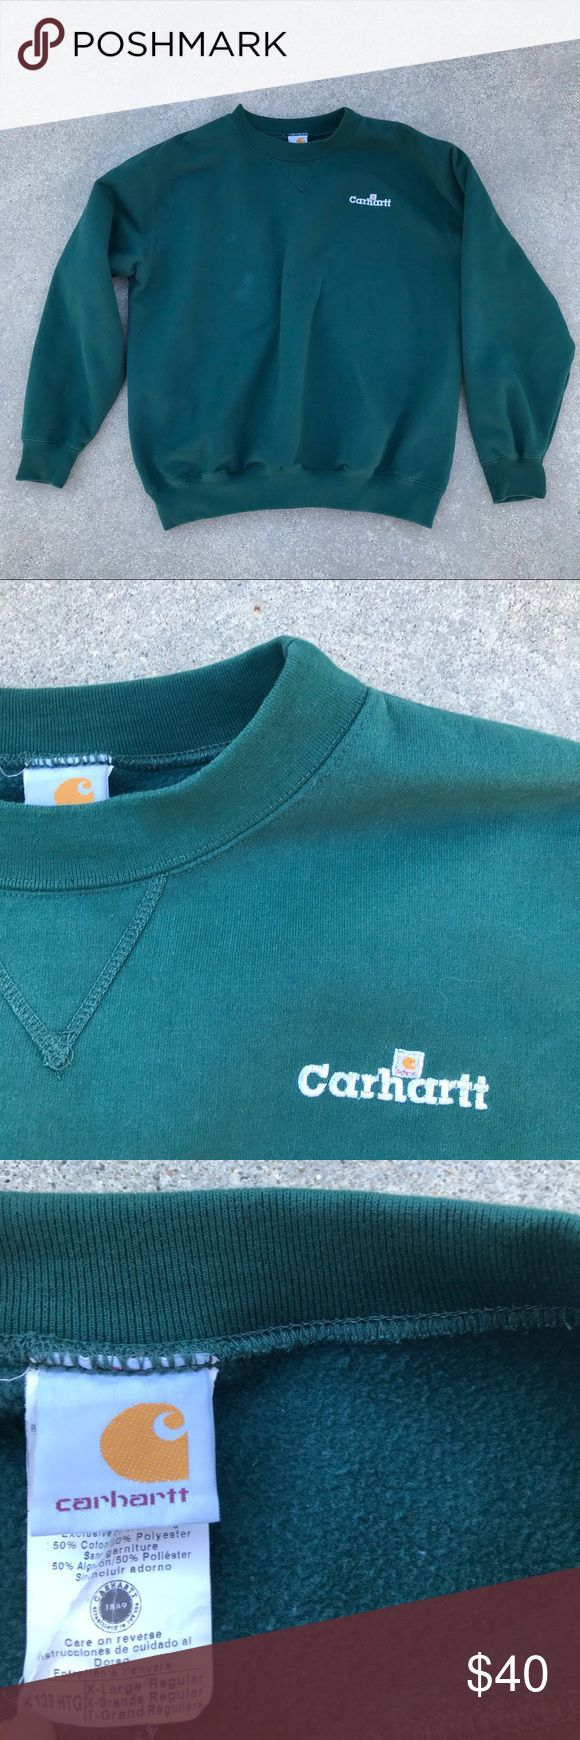 Carhartt Sweatshirt Green Carhartt Sweatshirt in size XL. Good condition with no stains or holes. Carhartt Shirts Sweatshirts & Hoodies